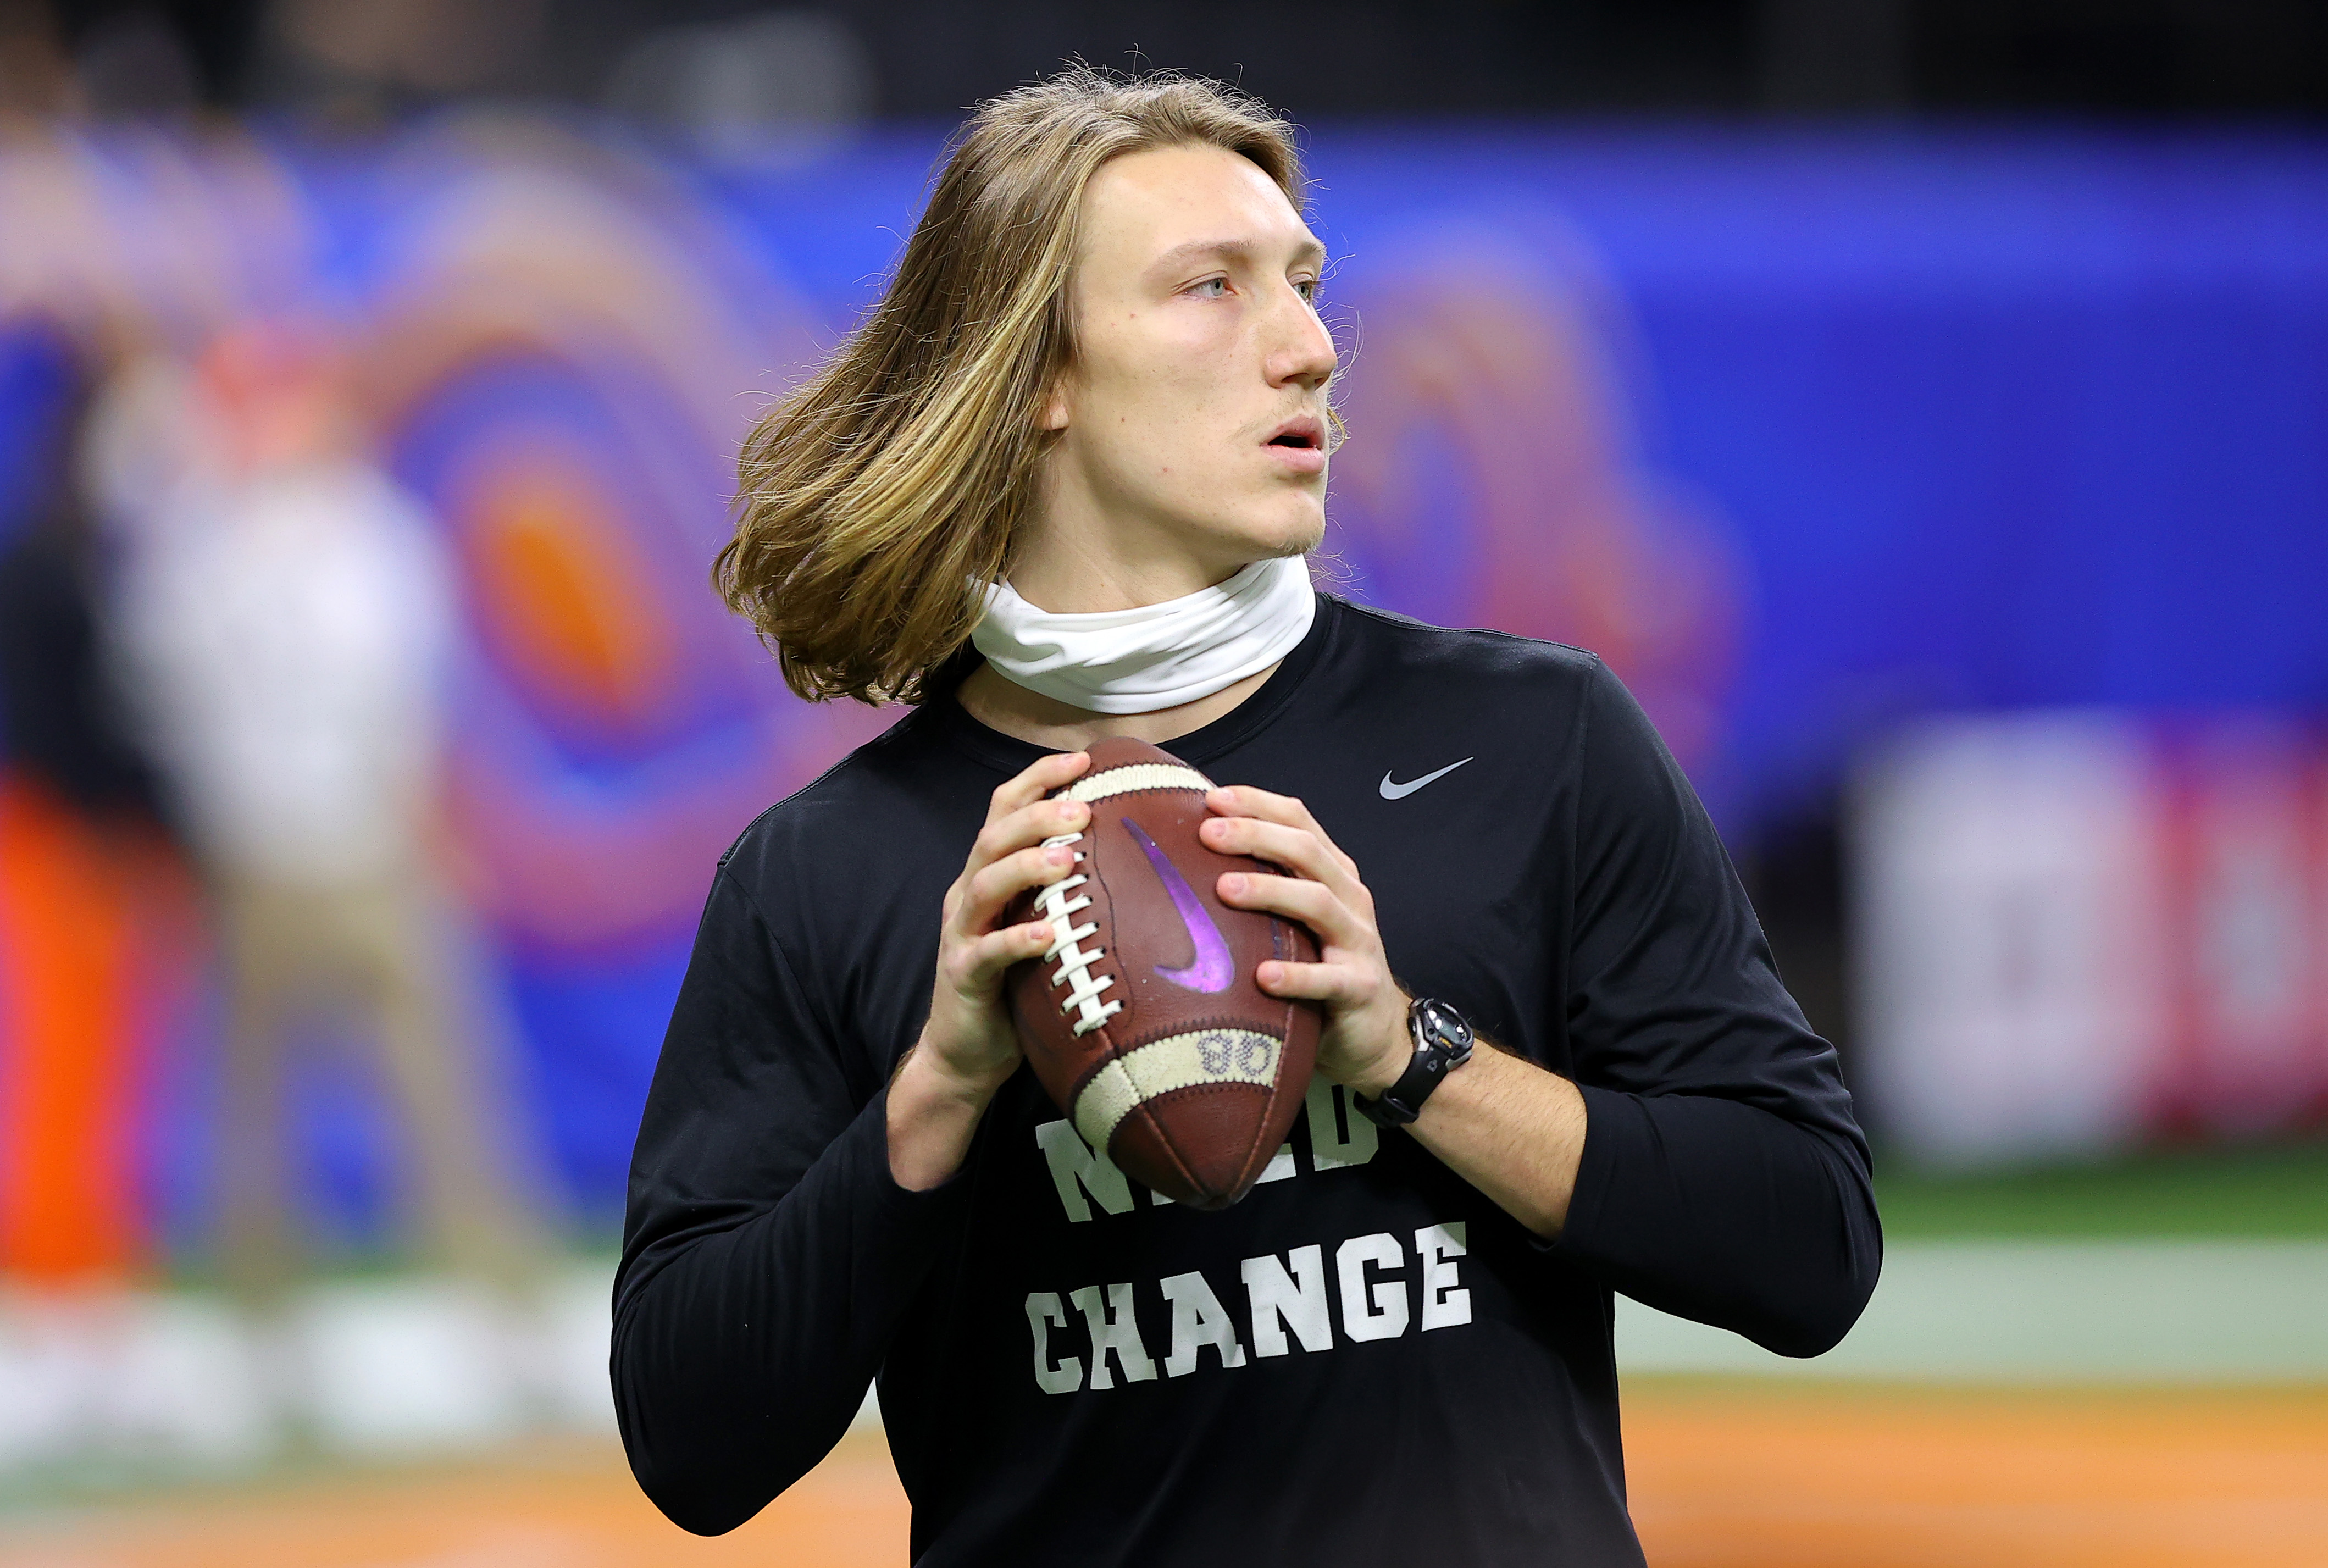 Trevor Lawrence #16 of the Clemson Tigers warms up before the game against the Ohio State Buckeyes during the College Football Playoff semifinal game at the Allstate Sugar Bowl at Mercedes-Benz Superdome on January 01, 2021 in New Orleans, Louisiana.